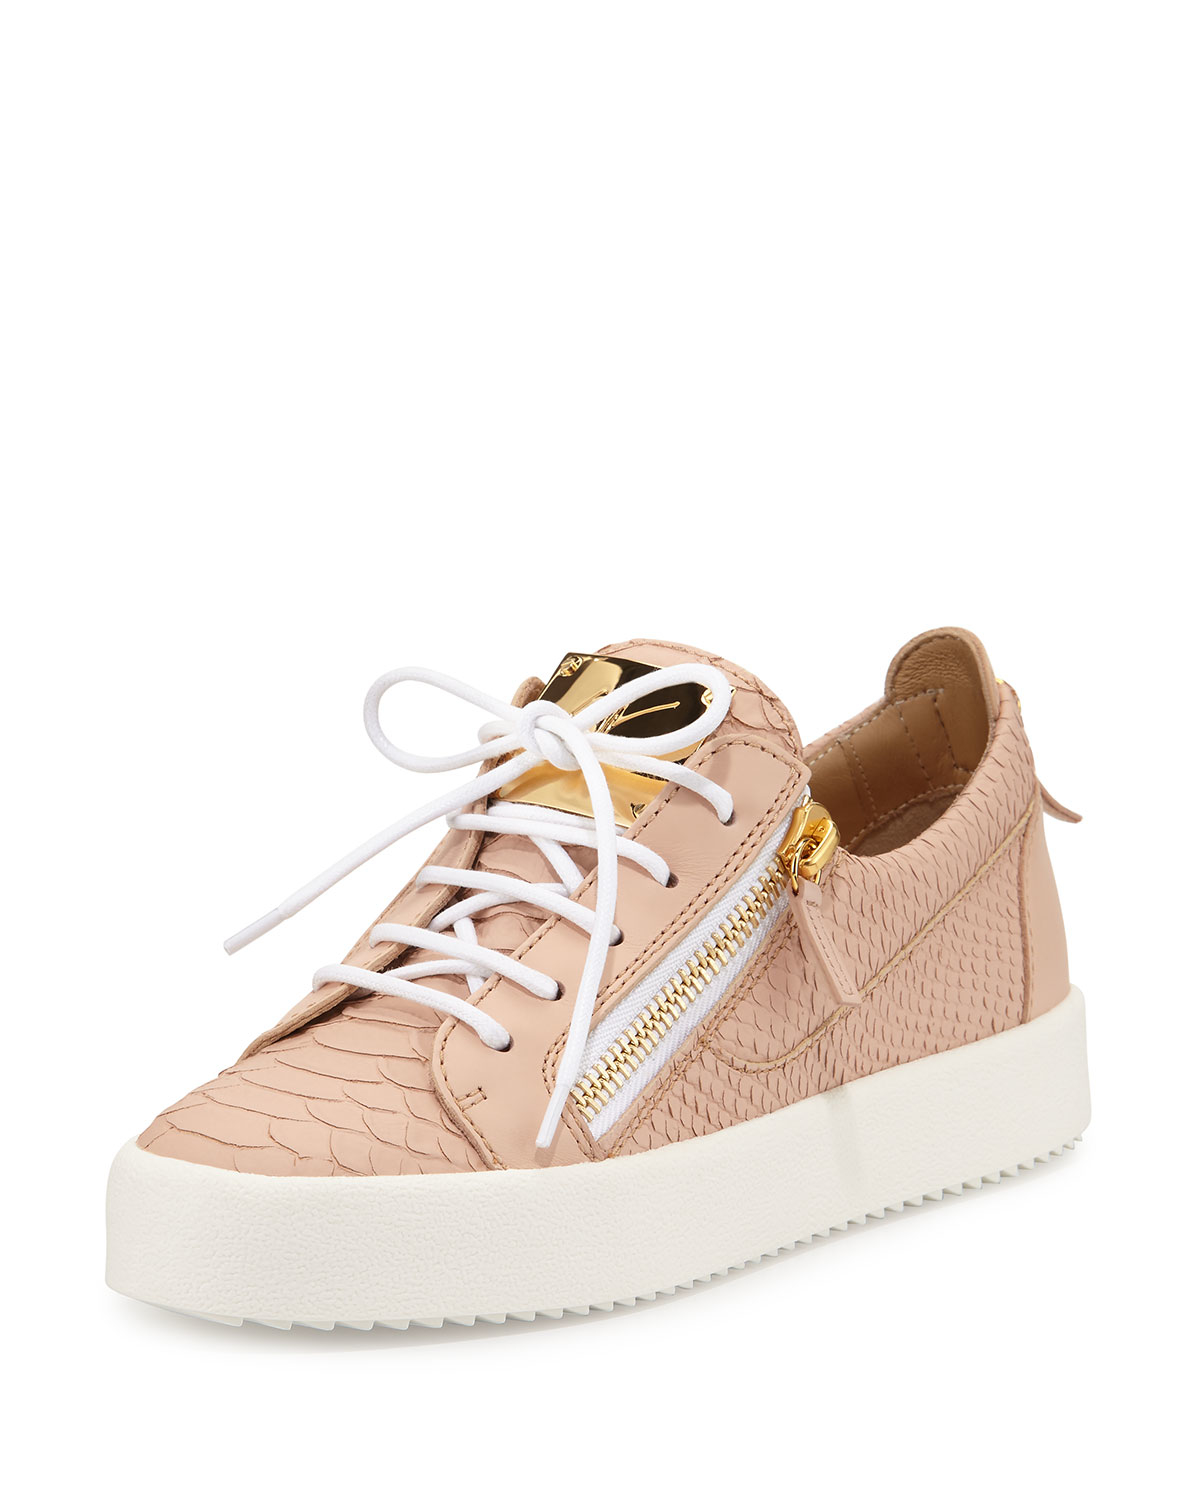 Lyst - Giuseppe Zanotti May Snake-embossed Lace-up Sneaker in Pink 52ca0ce8bec9